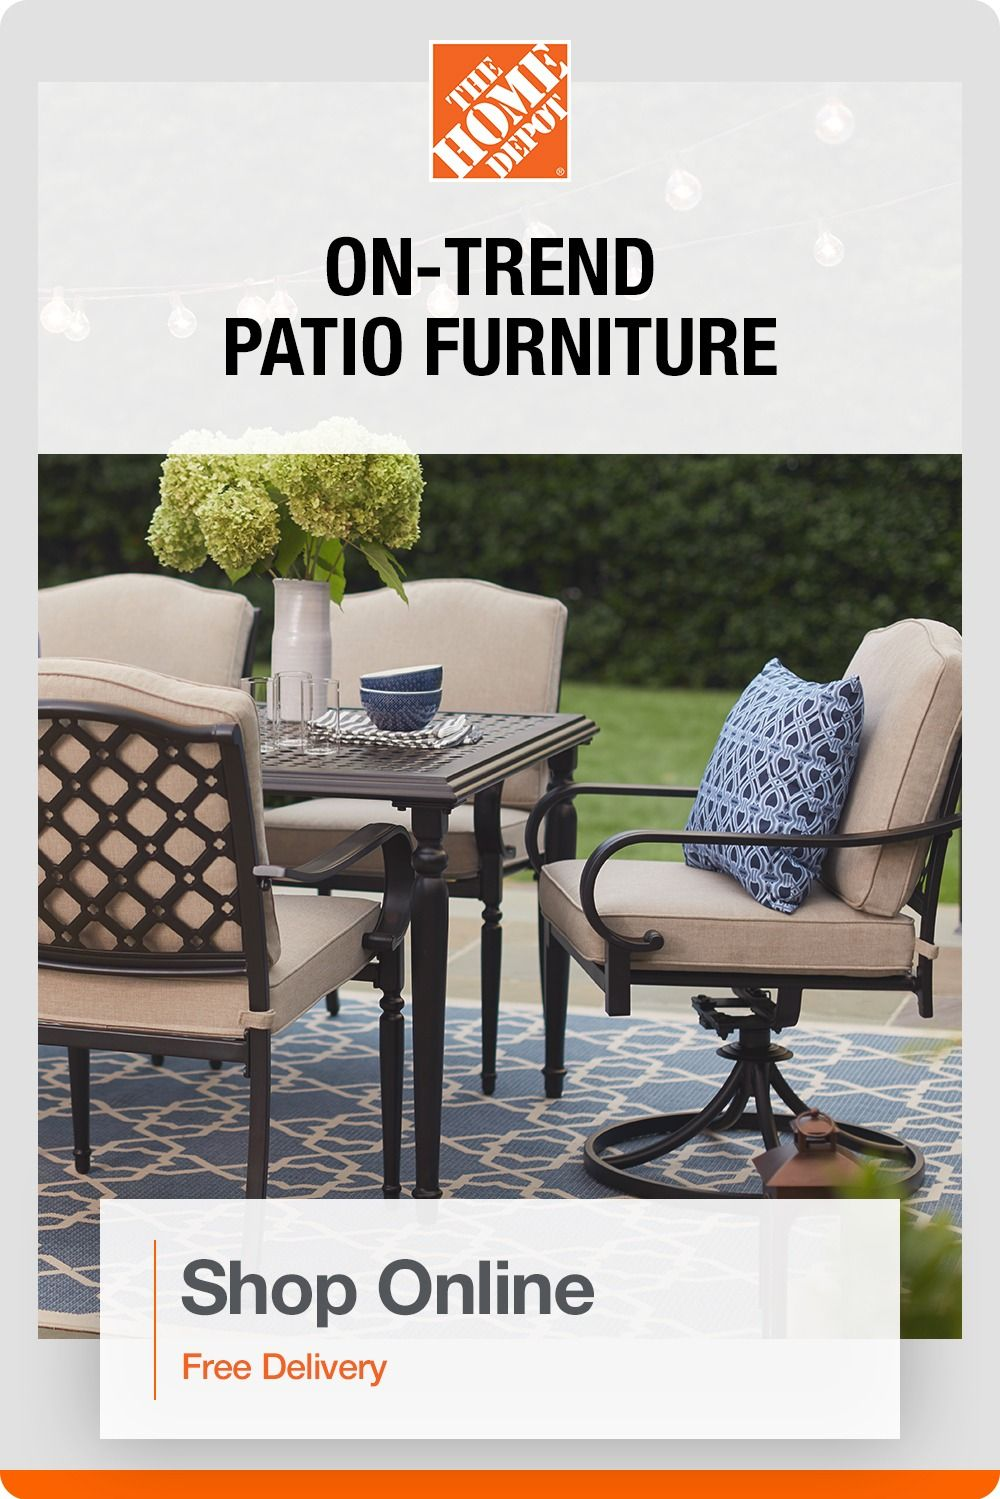 Explore Patio Furniture From The Home Depot Furniture Durable Patio Furniture Covered Patio Design